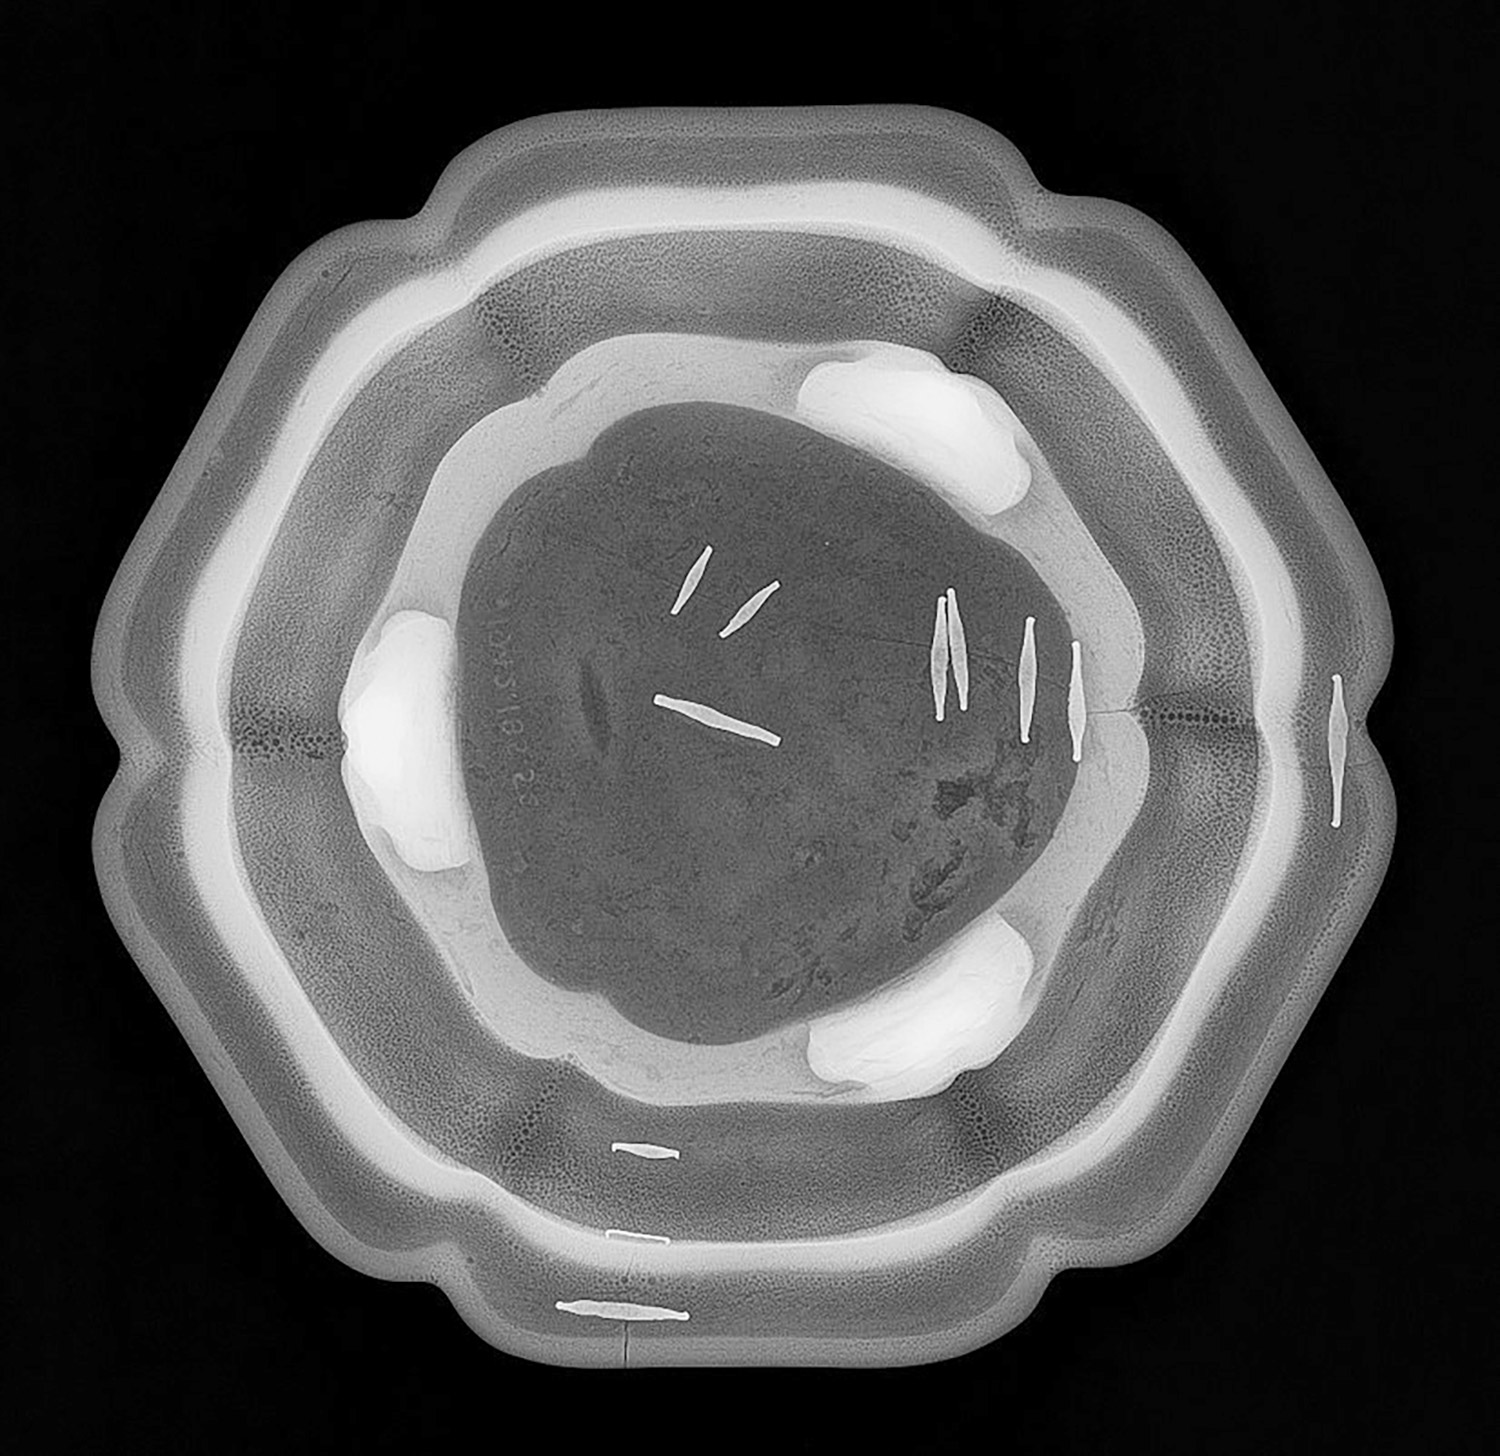 Hand-forged iron restoration staples are visible in this X-radiograph of a numbered Jun ware.